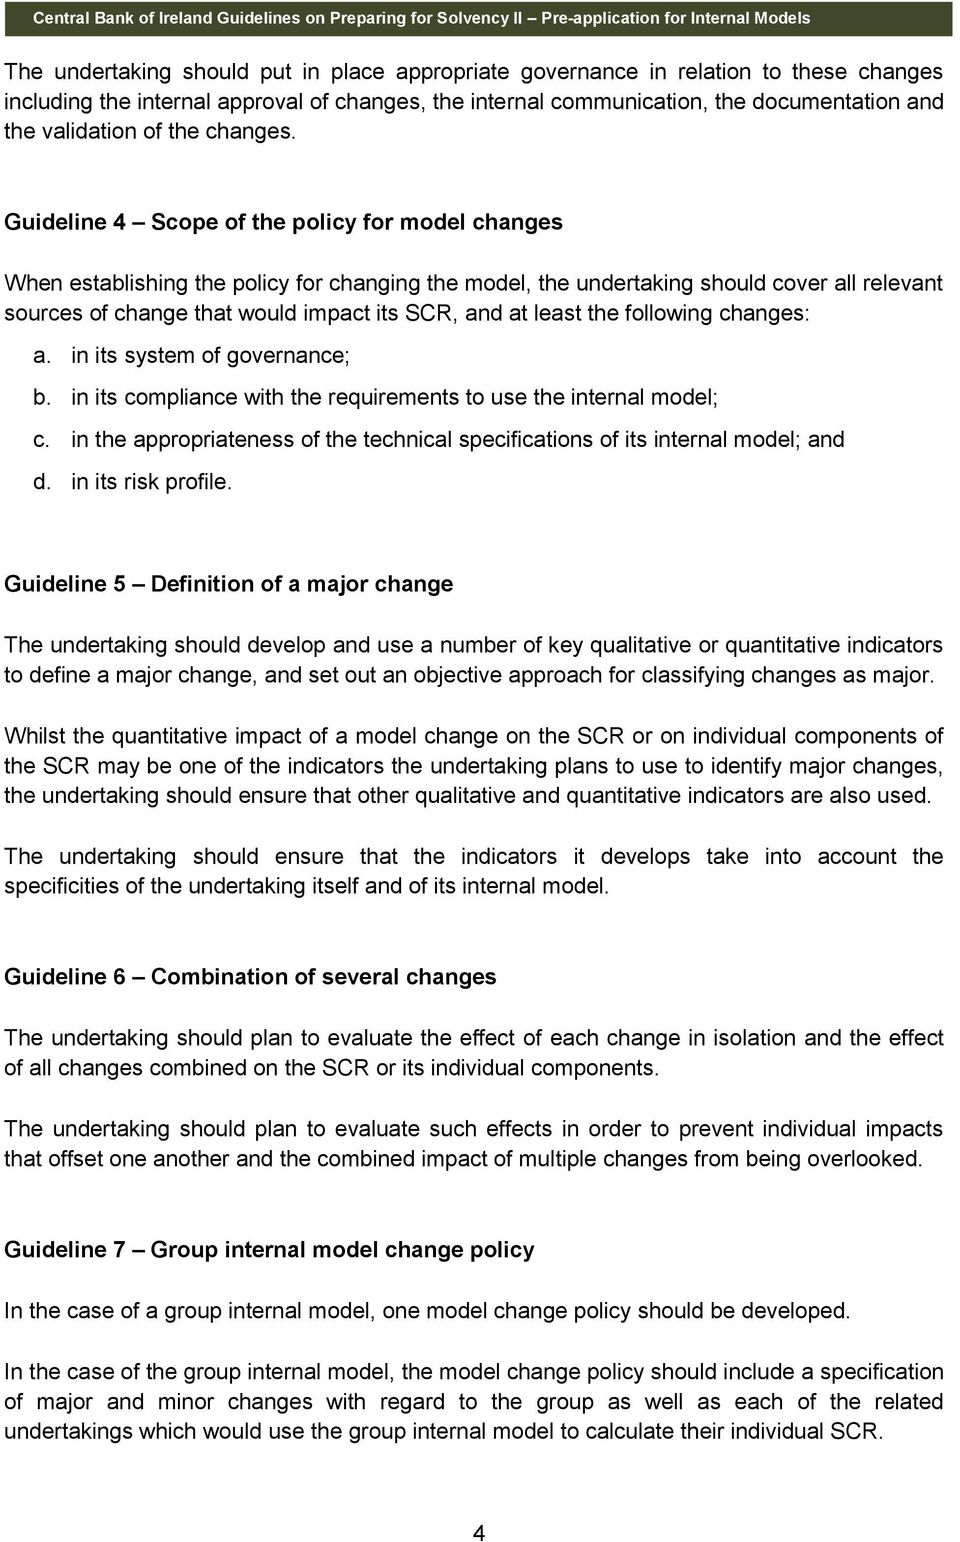 Guideline 4 Scope of the policy for model changes When establishing the policy for changing the model, the undertaking should cover all relevant sources of change that would impact its SCR, and at